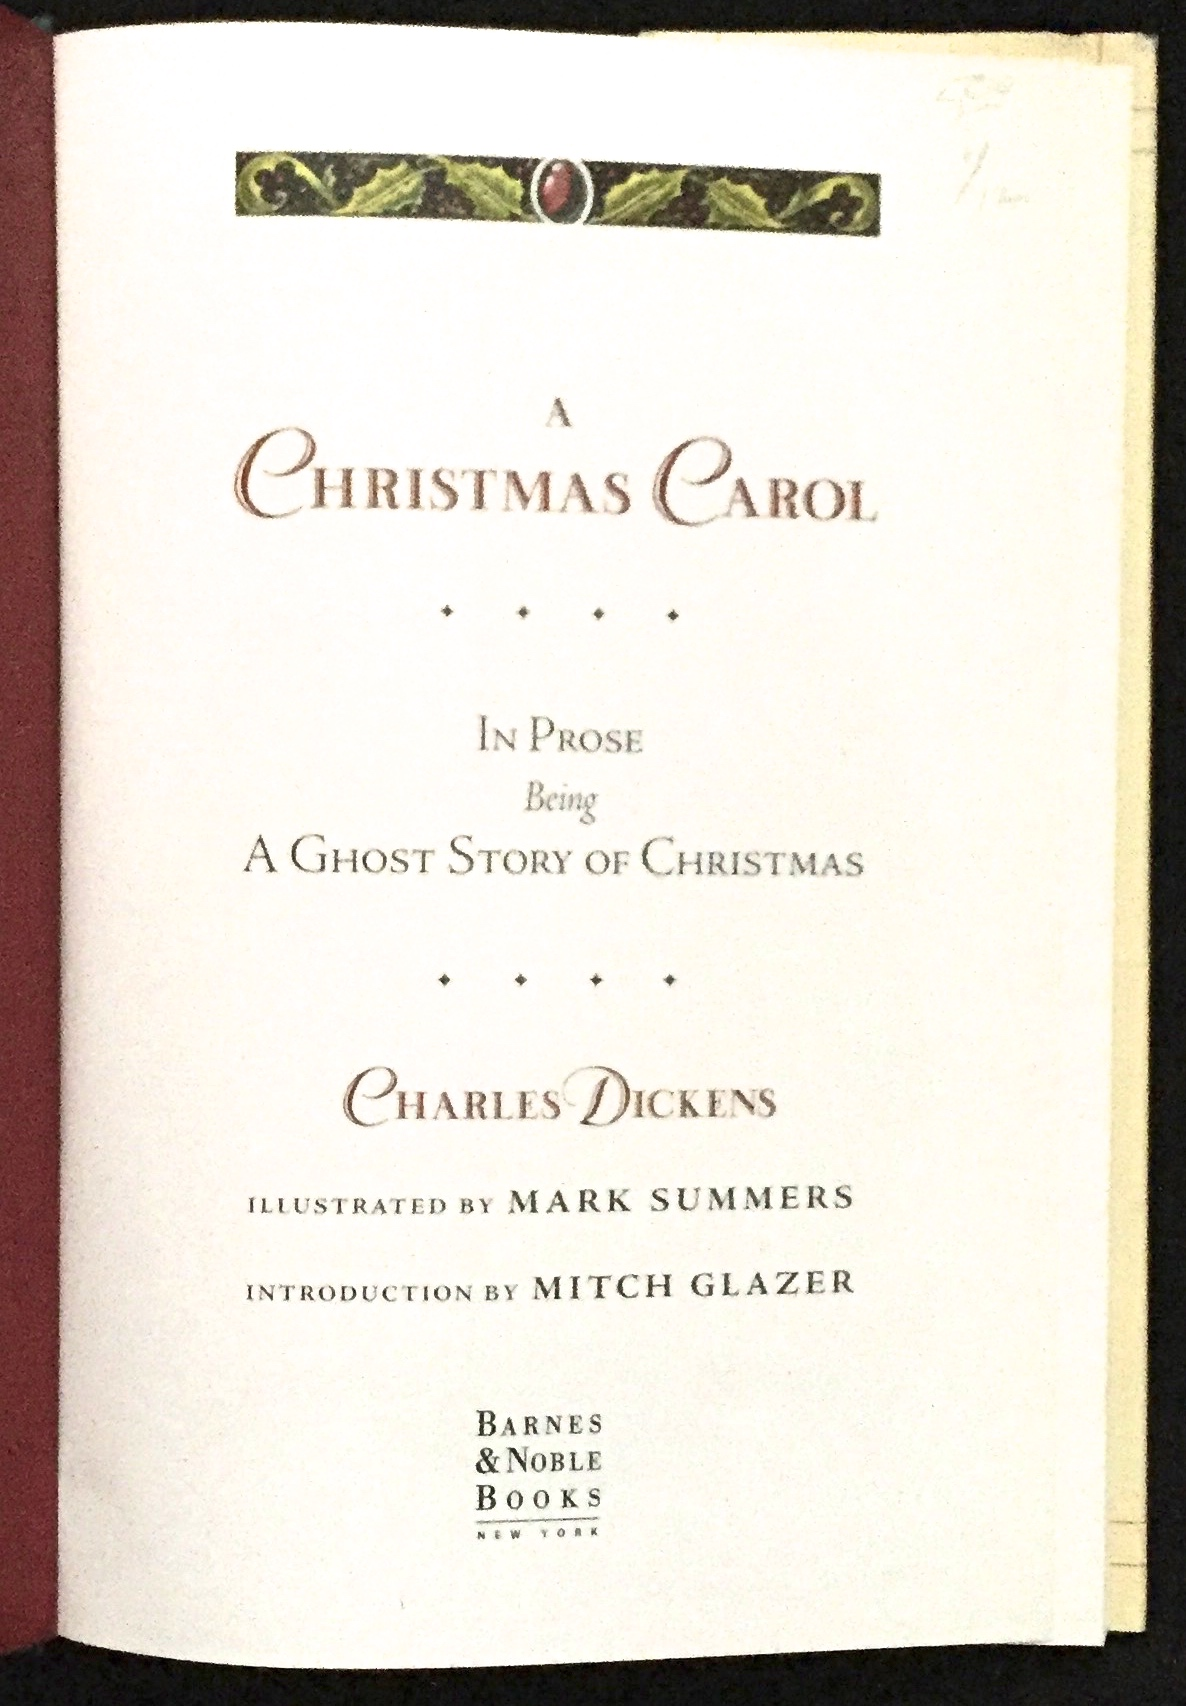 A CHRISTMAS CAROL / In Prose / Being / A Ghost Story of Christmas ...